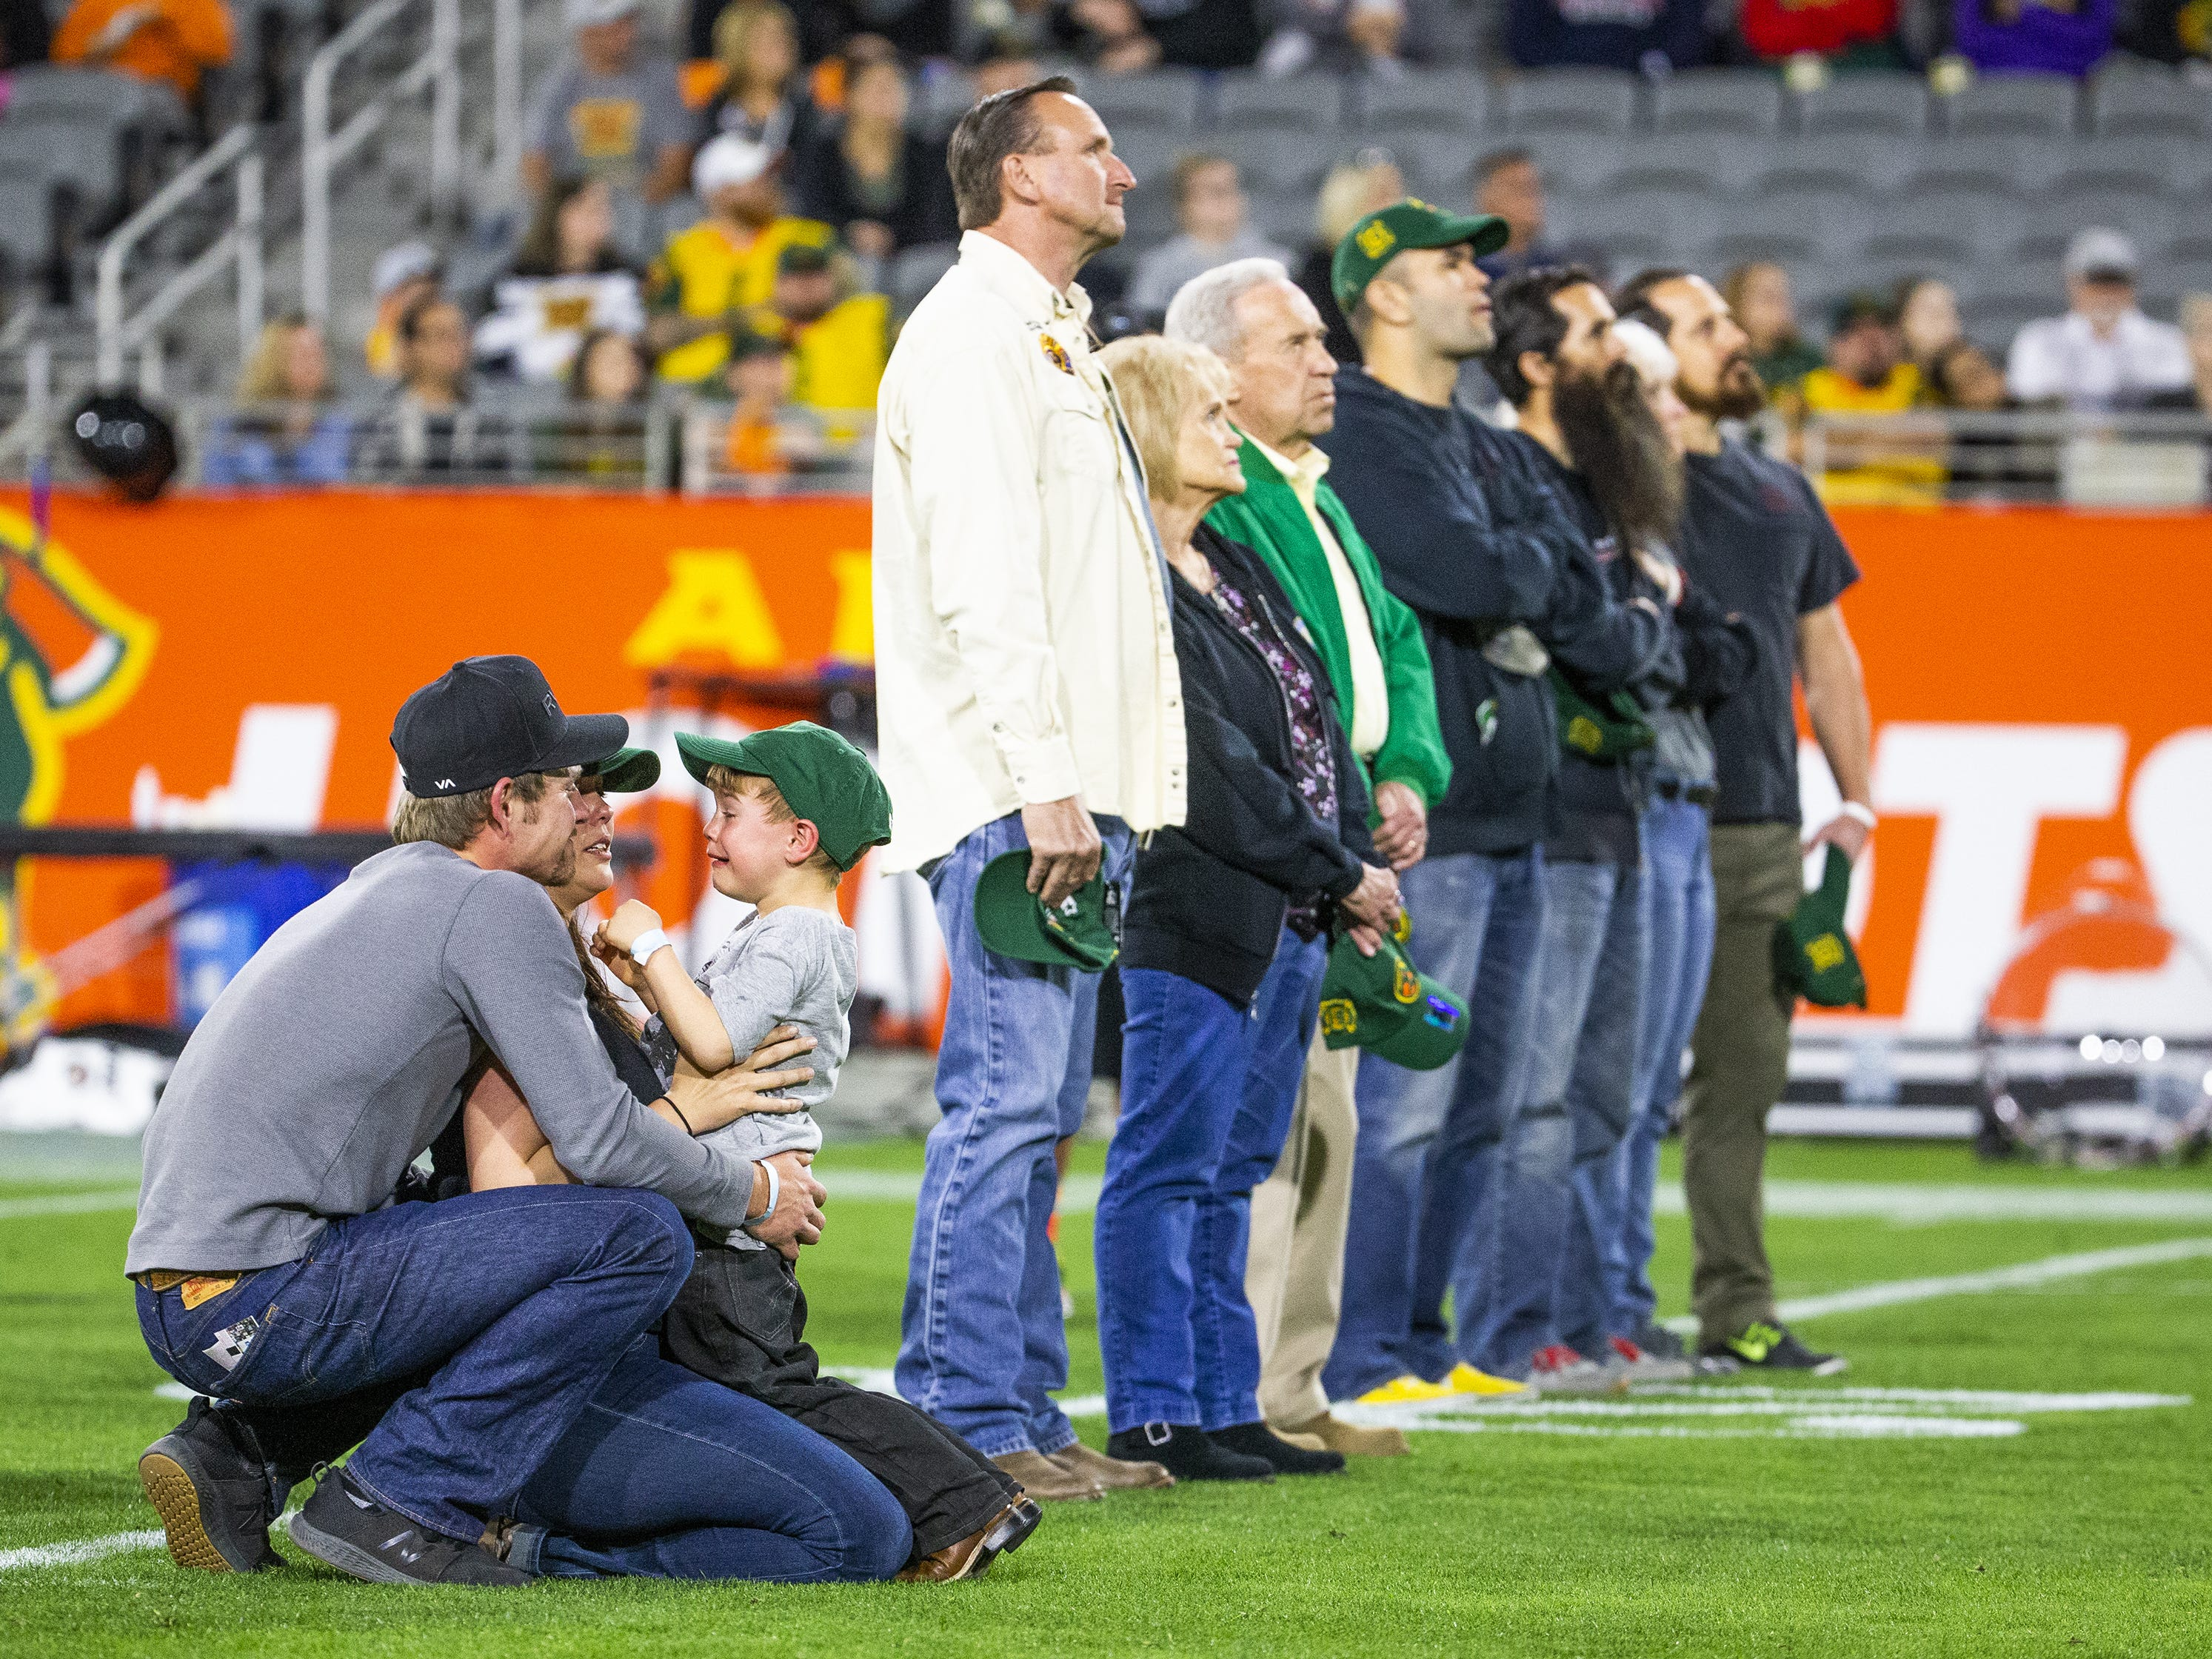 Amanda Misner-Parker holds her son, Jaxon Misner, 6, whose father was Granite Mountain Hotshot Sean Misner, as Jaxon cries during a tribute on the jumbotron to the fallen firefighters.  The tribute, at halftime of the Arizona Hotshots and Atlanta Legends football game at Sun Devil Stadium, Sunday, March 3, 2019, included a giant banner being unfurled, retiring the number 19 in honor of the fallen firefighters. At left is D.J. Parker, brother of Wade Parker, one of the Granite Mountain Hotshots who is now Amanda's husband.